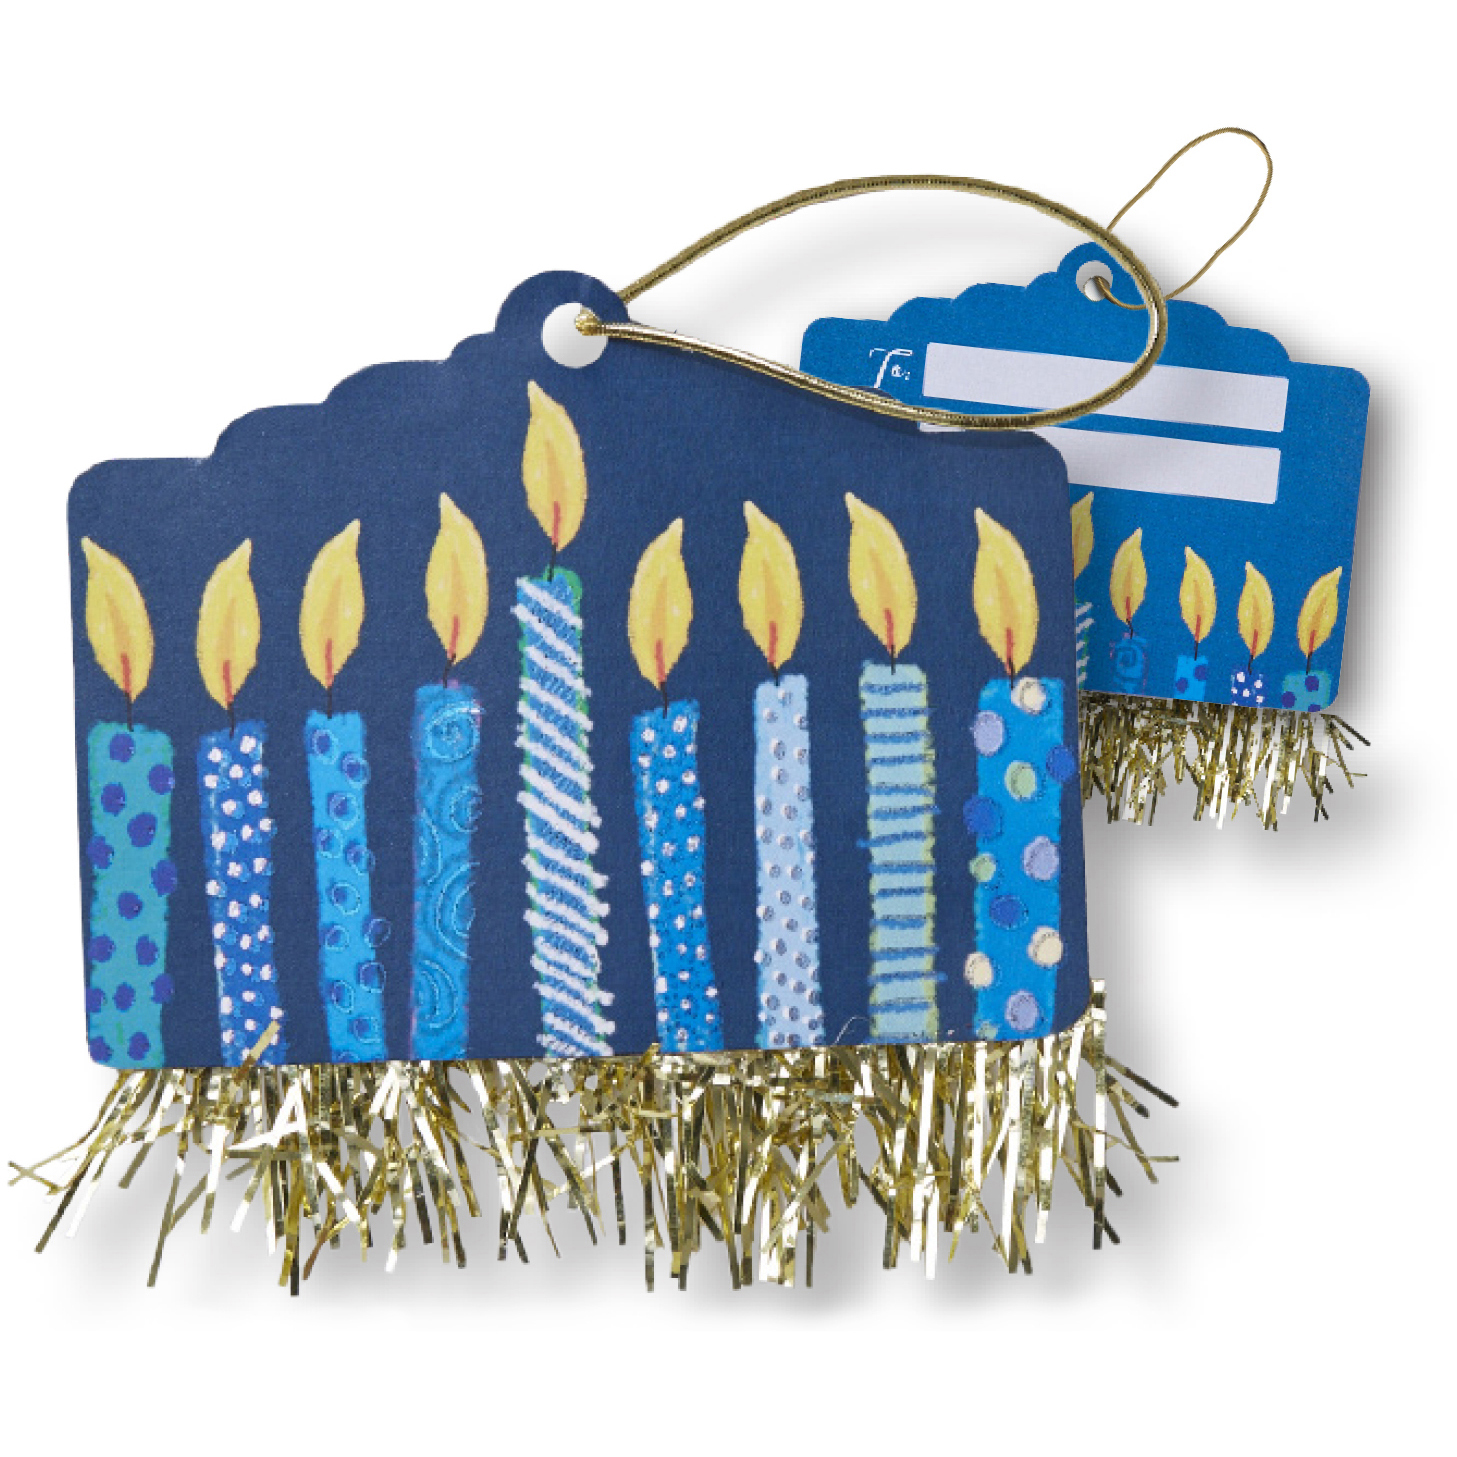 Jillson & Roberts Gift Tags with Tie String, Hanukkah Candles (100 Pcs)